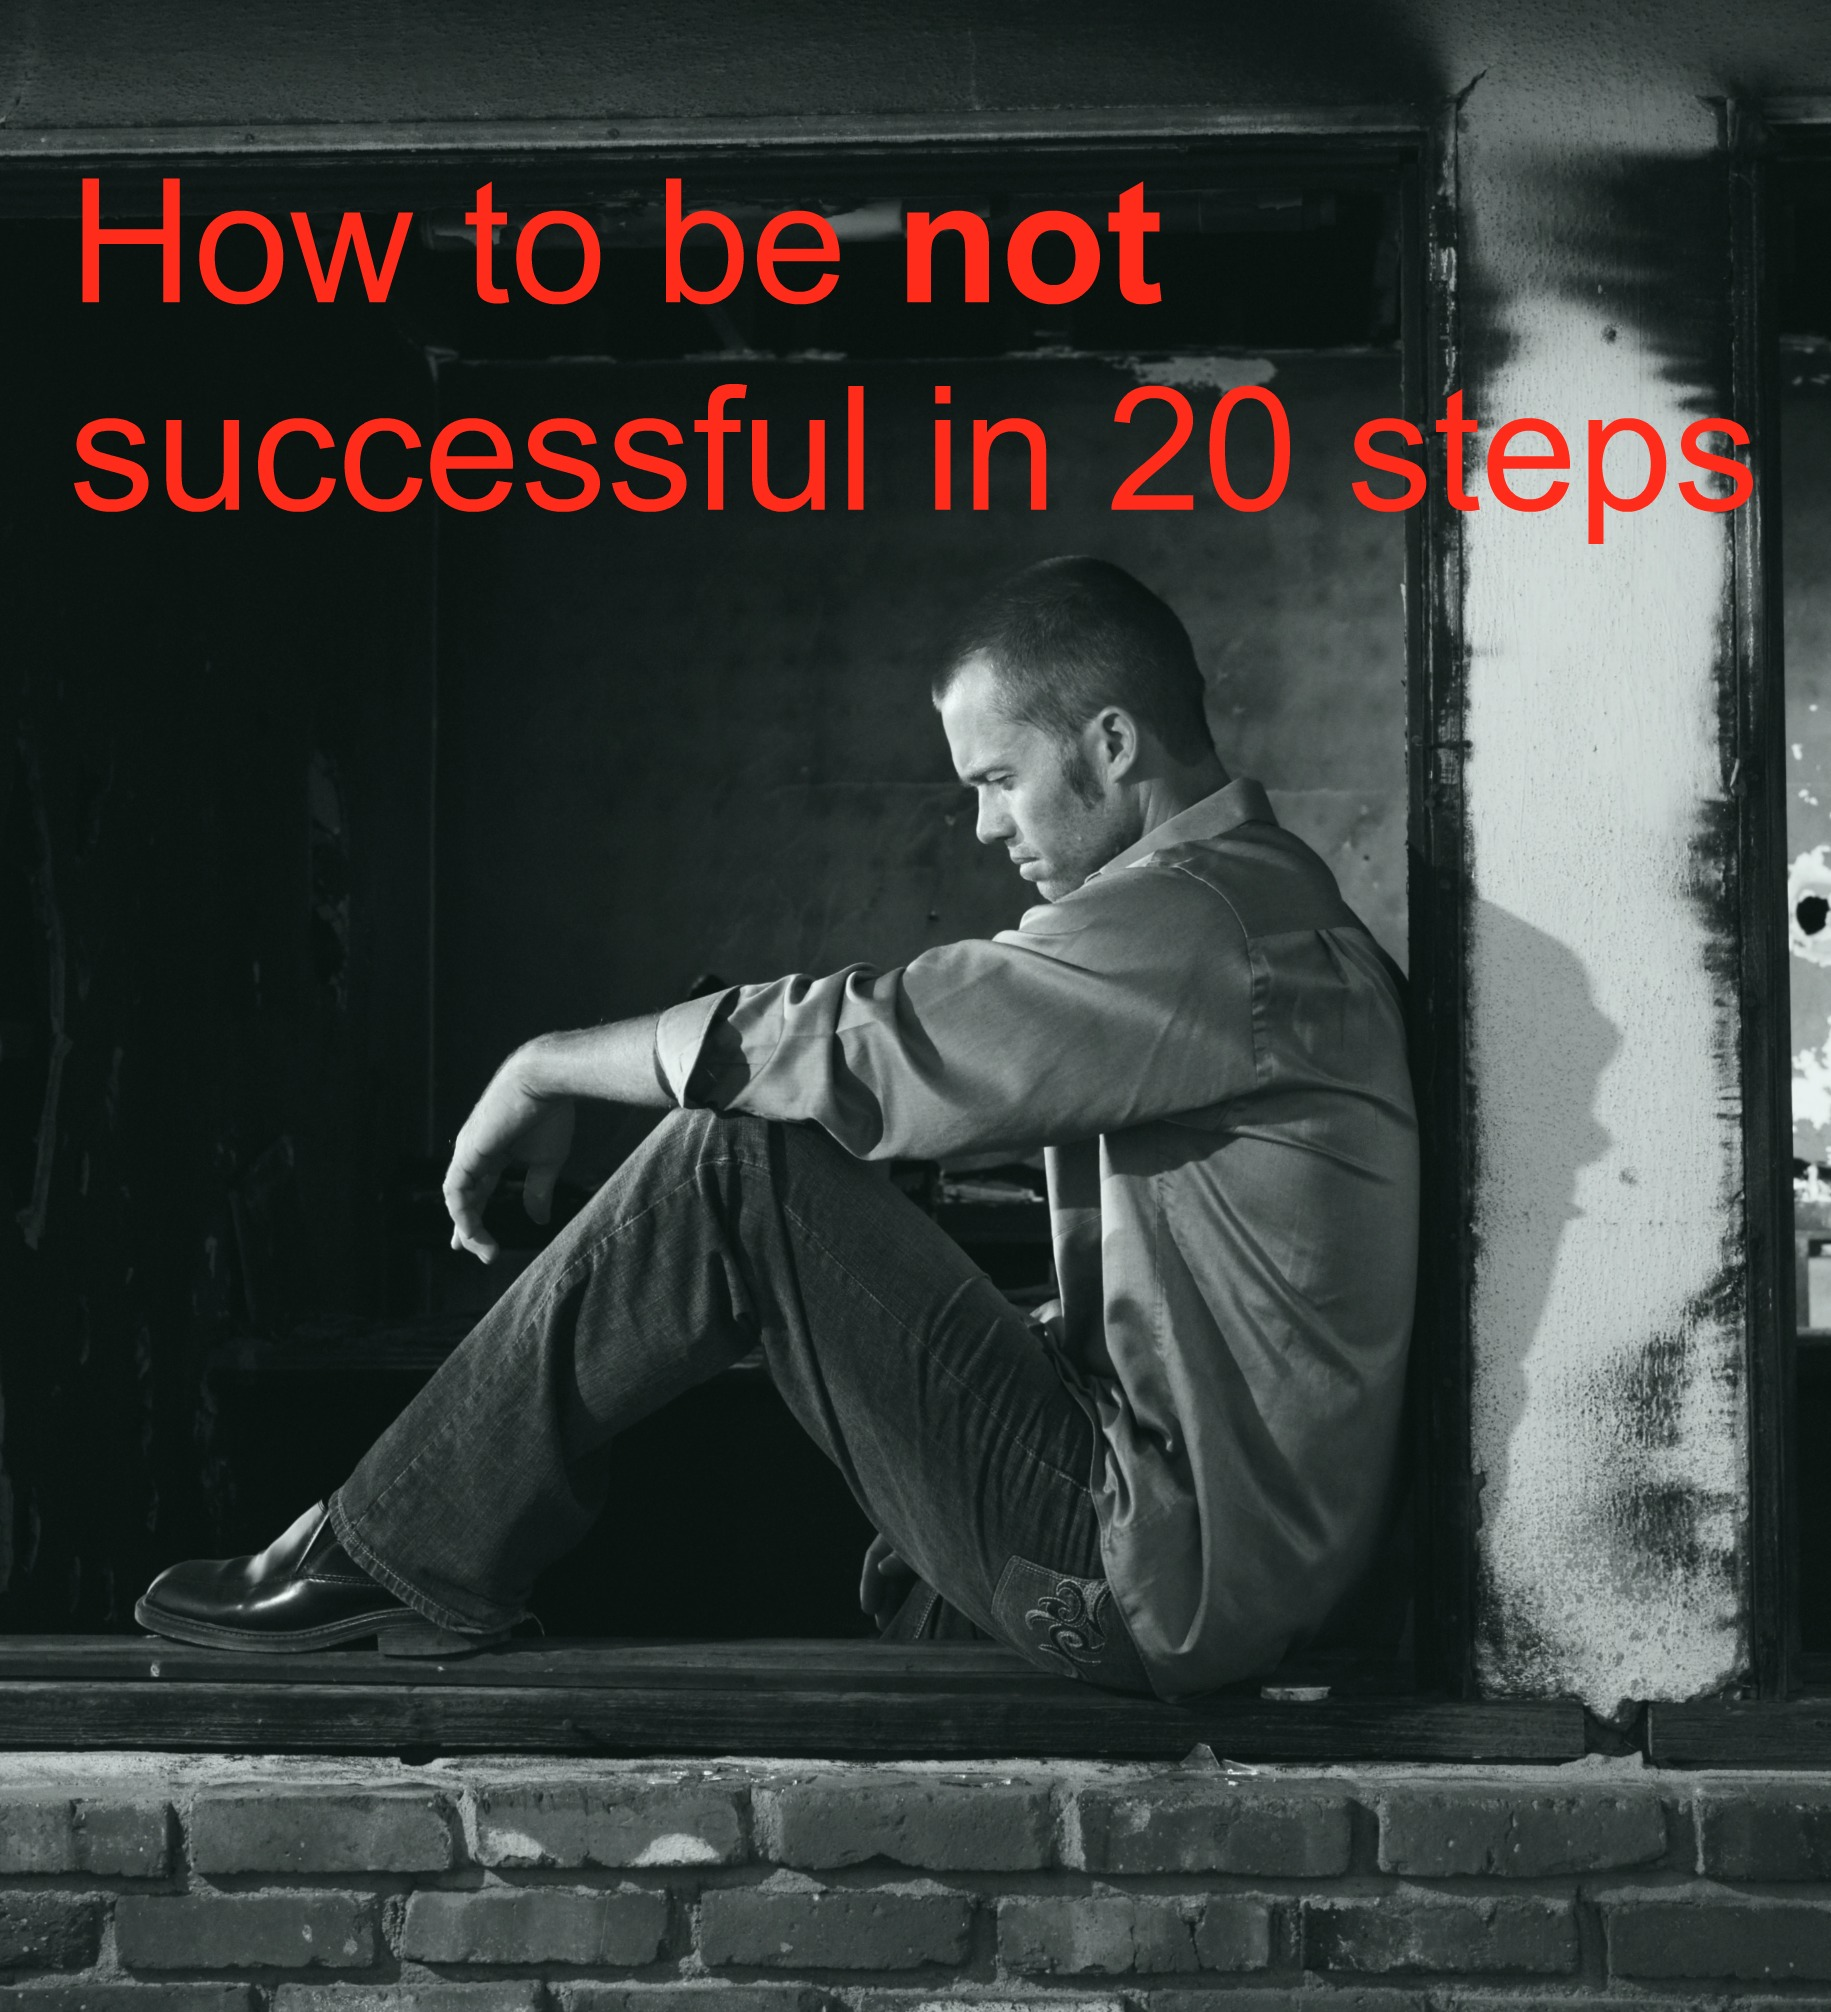 How to be not successful in 20 steps